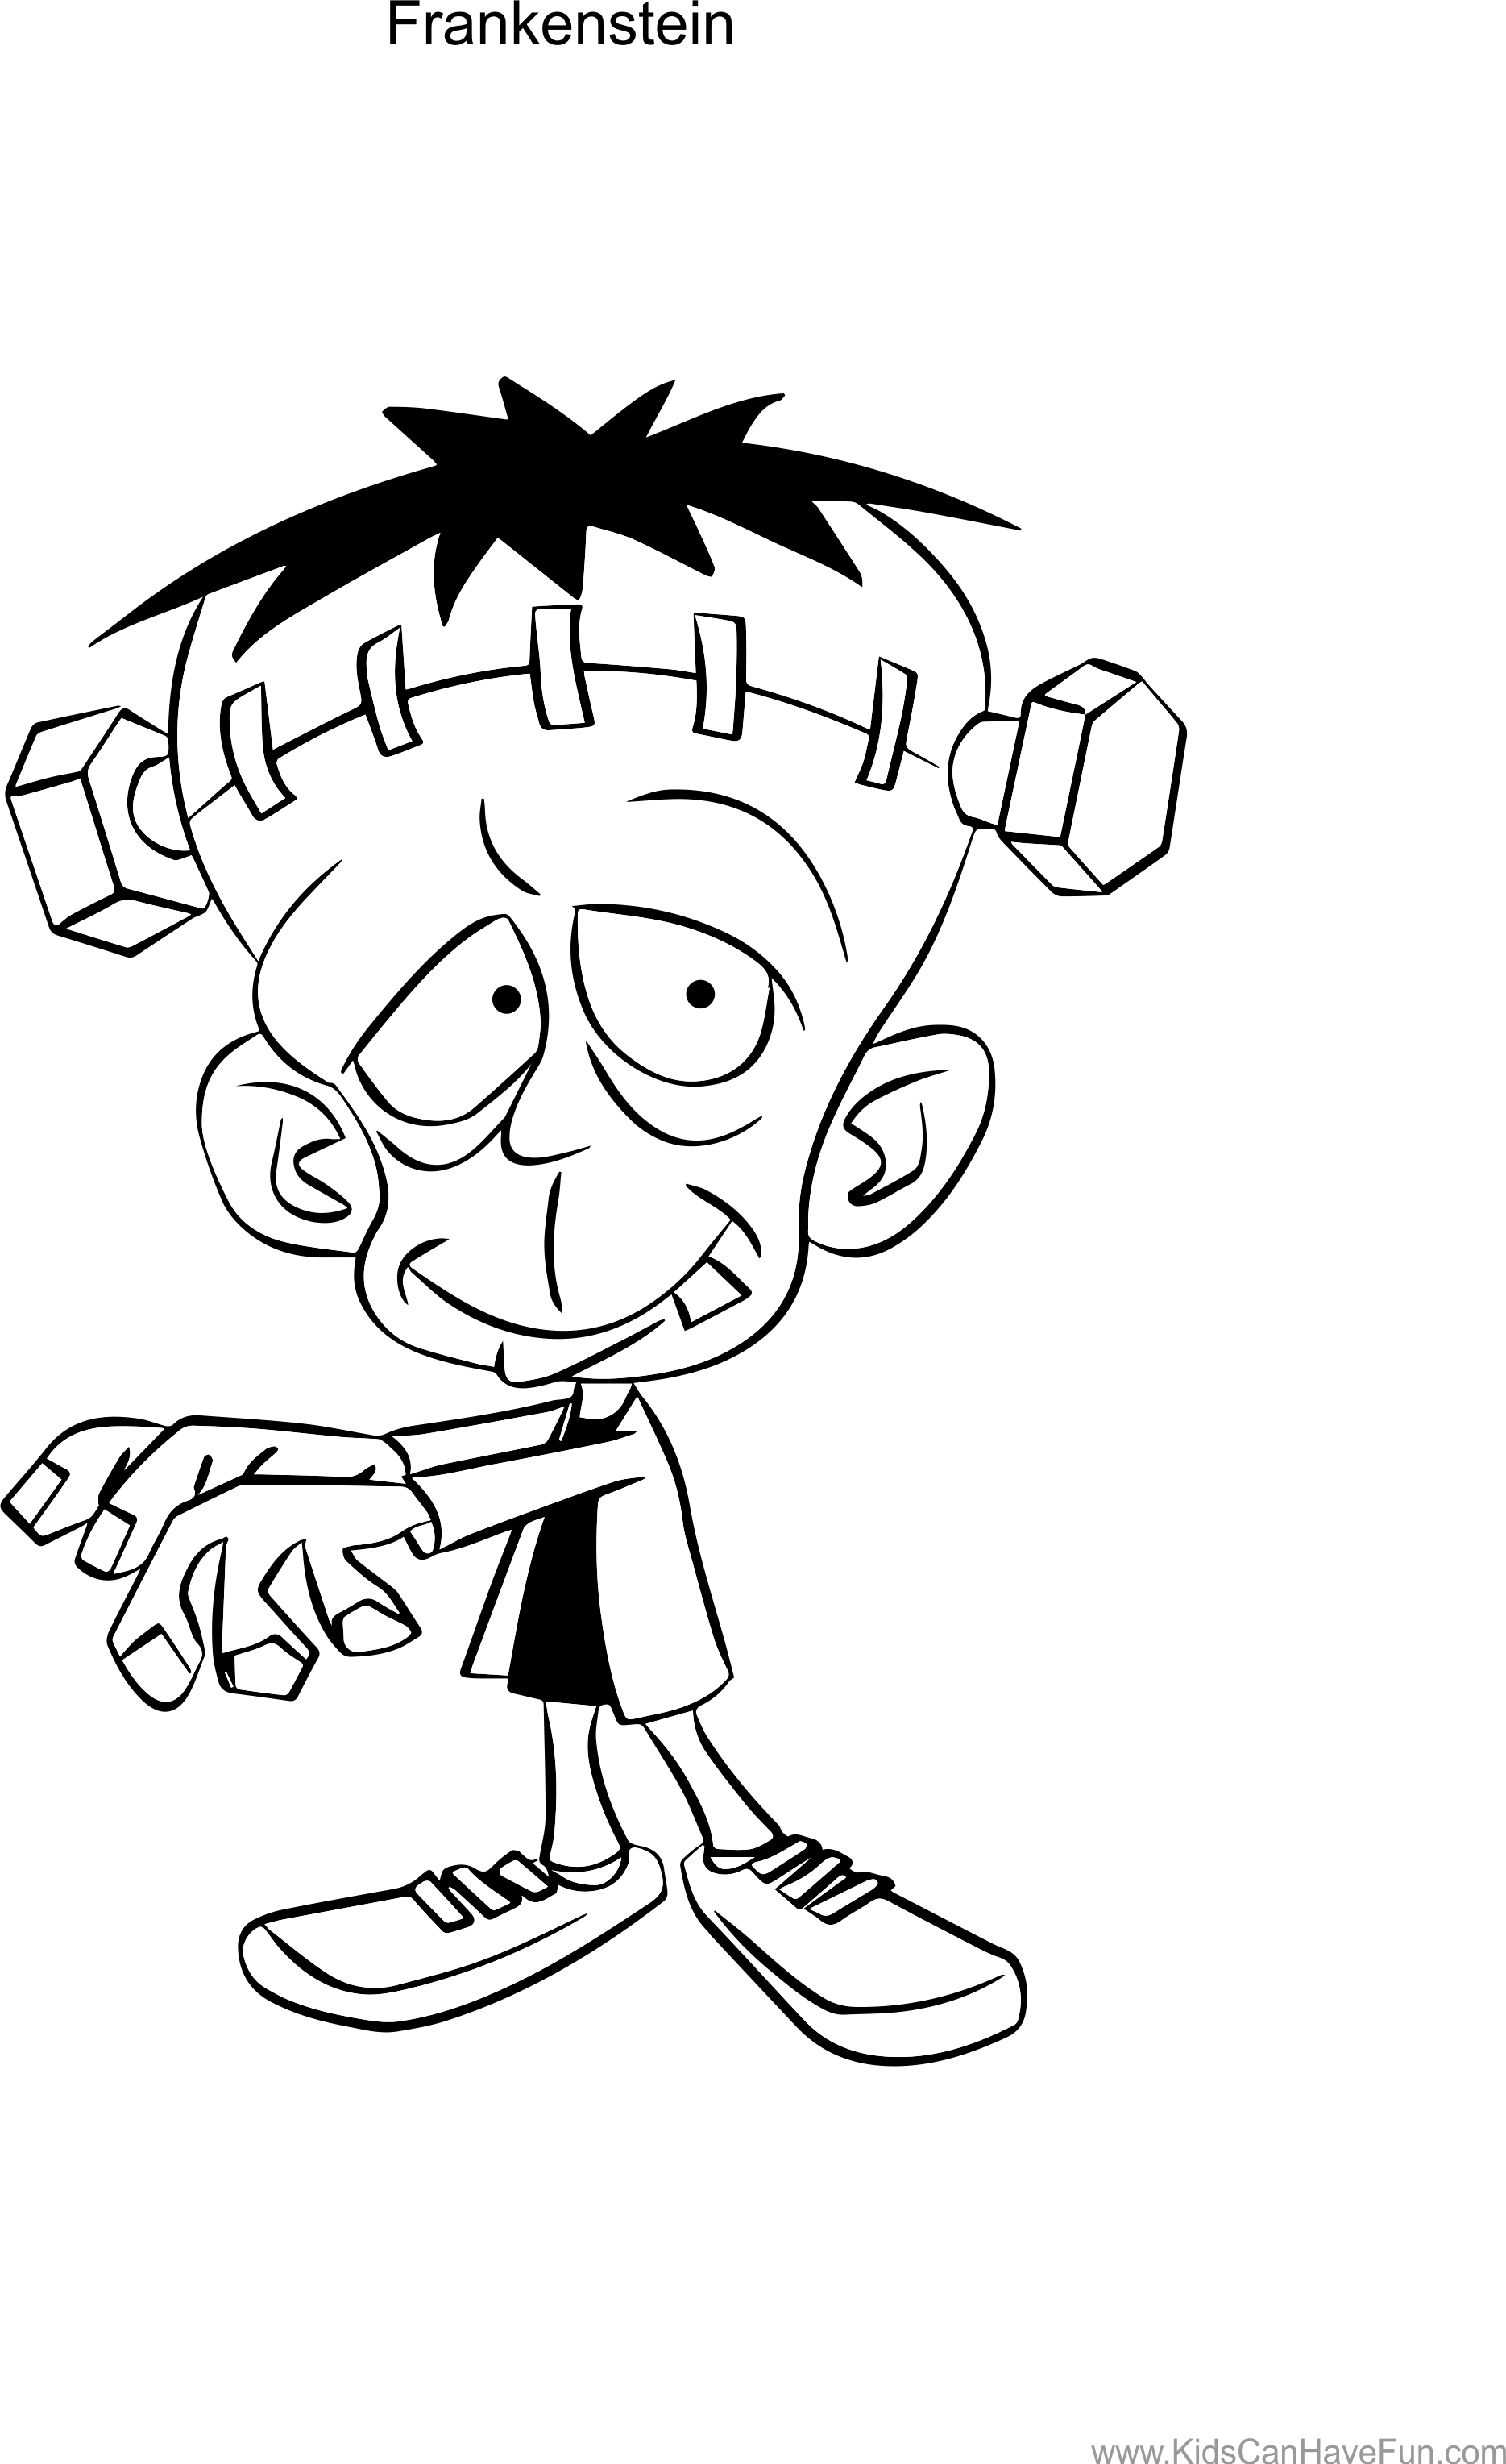 Stitch clipart frankenstein. Simple drawing at getdrawings